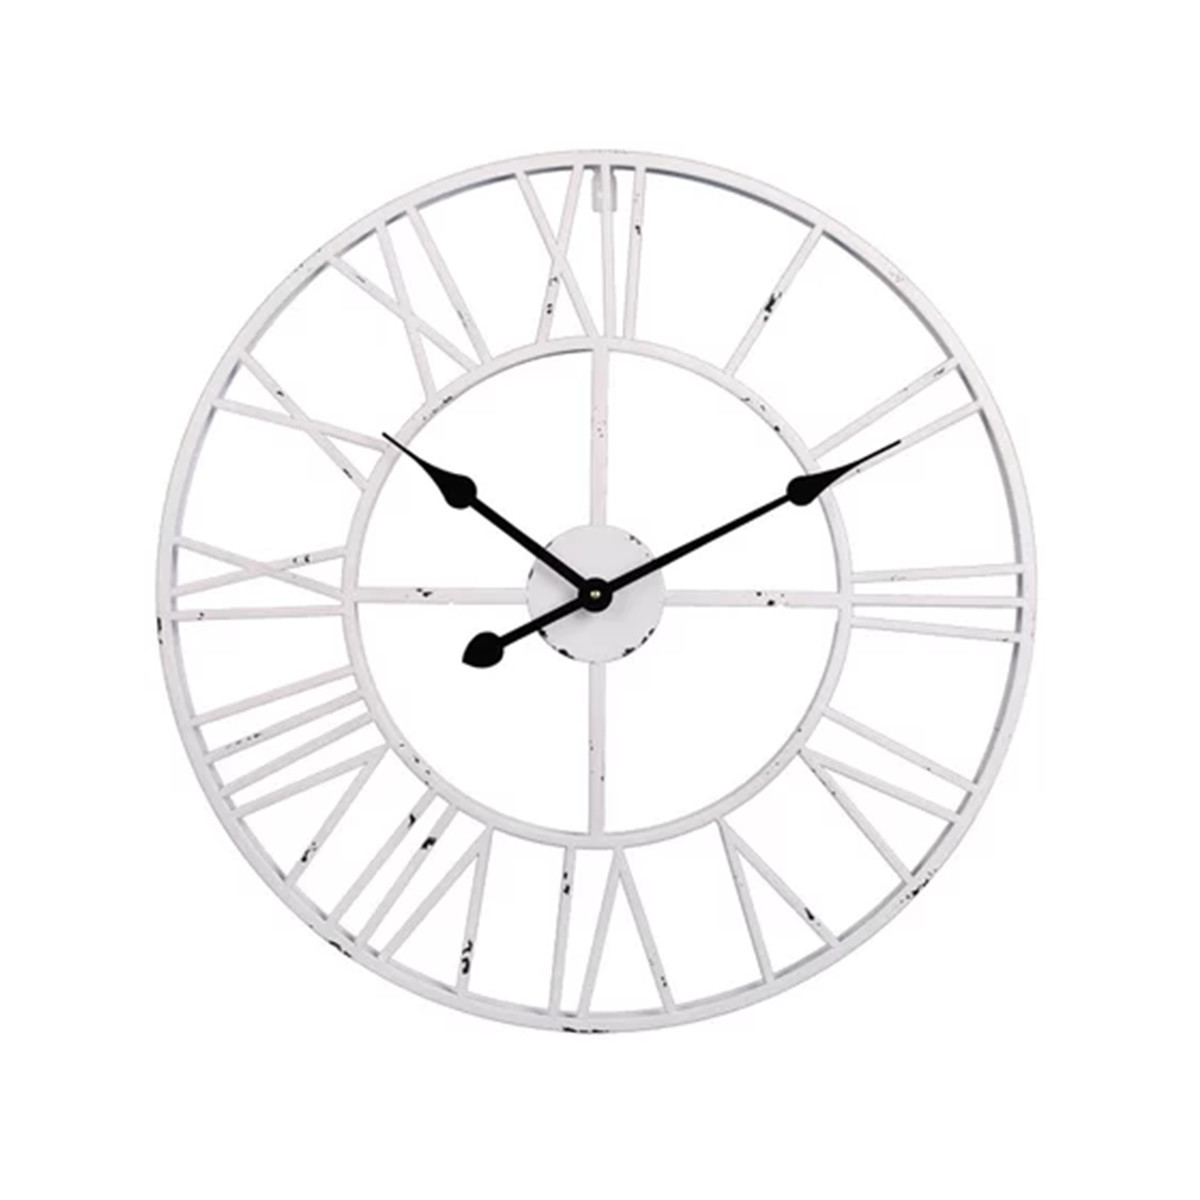 Large Roman wall clock in a distressed white finish. photo